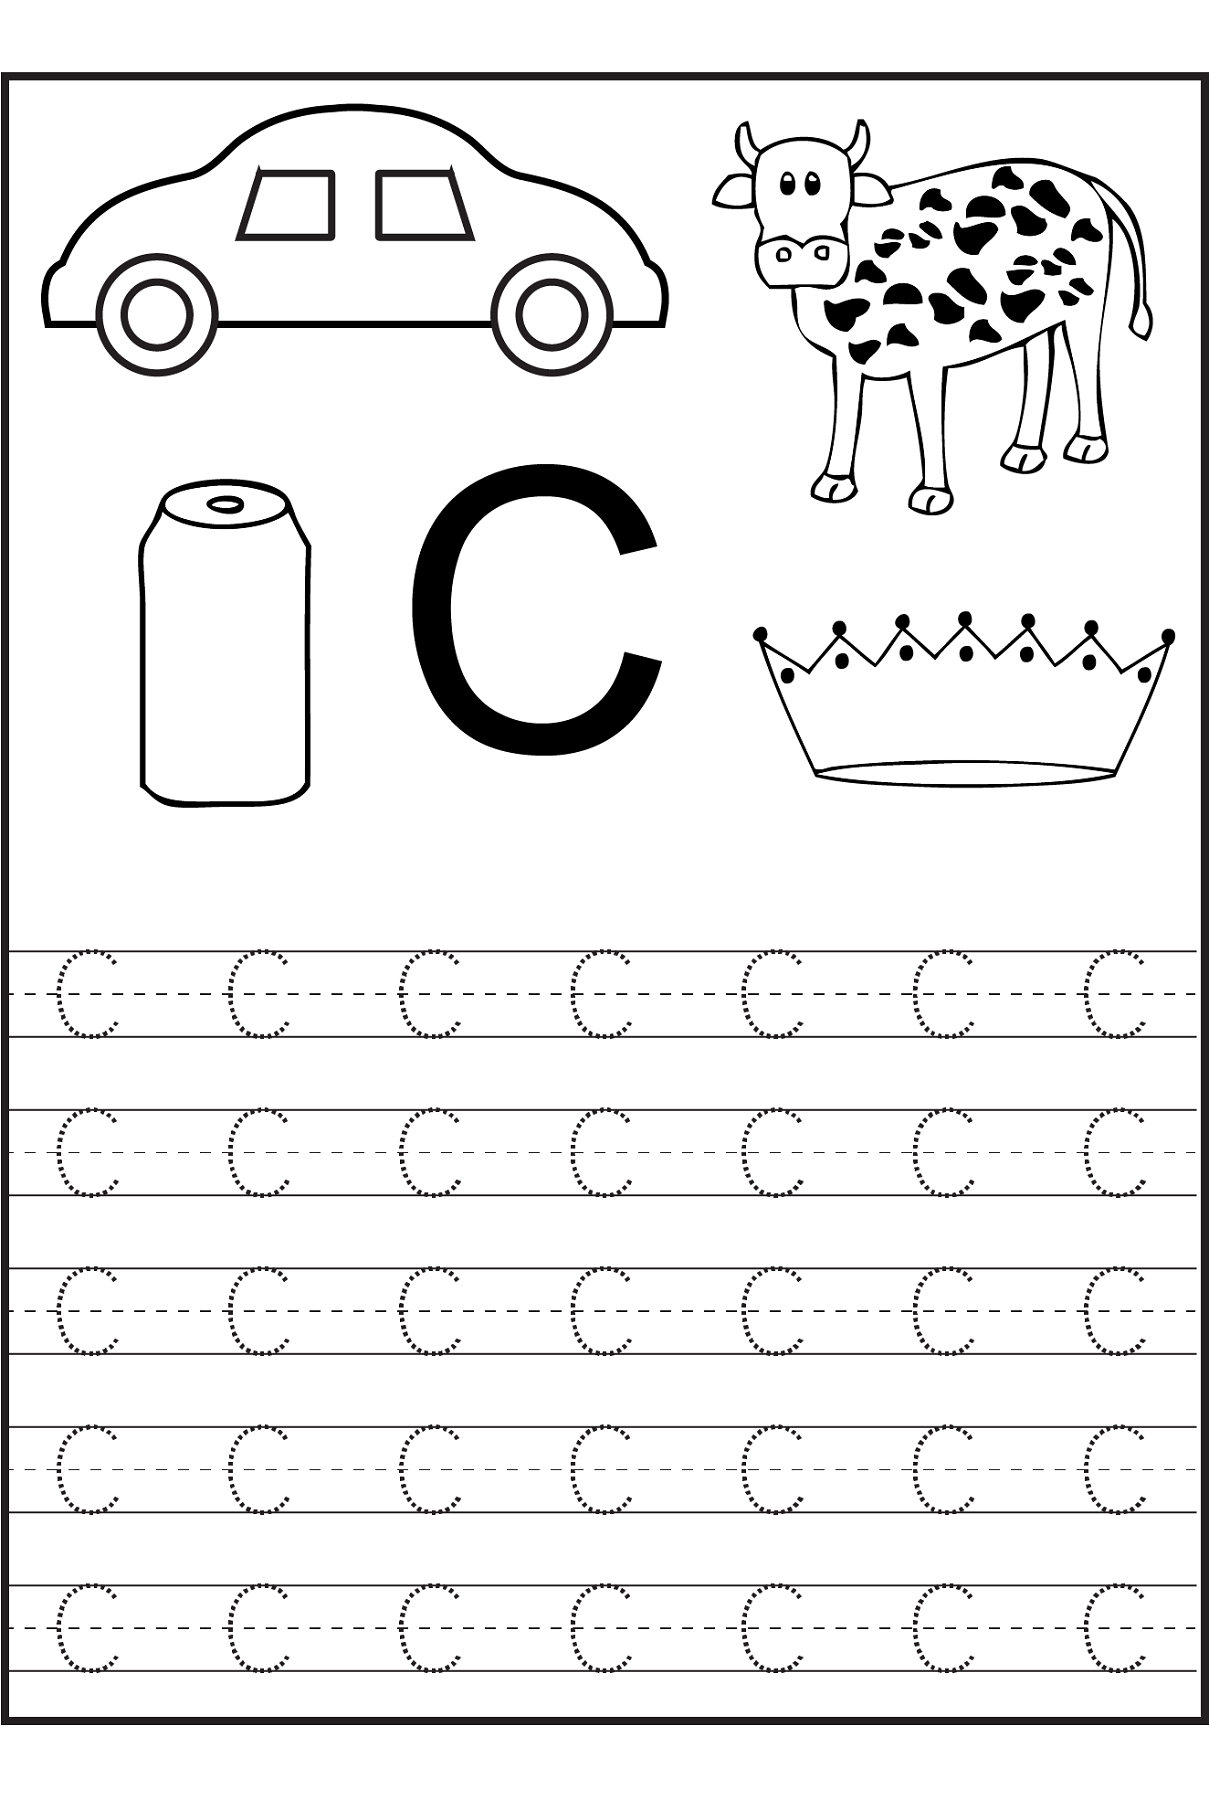 Trace the Letter C Worksheets Alphabet worksheets